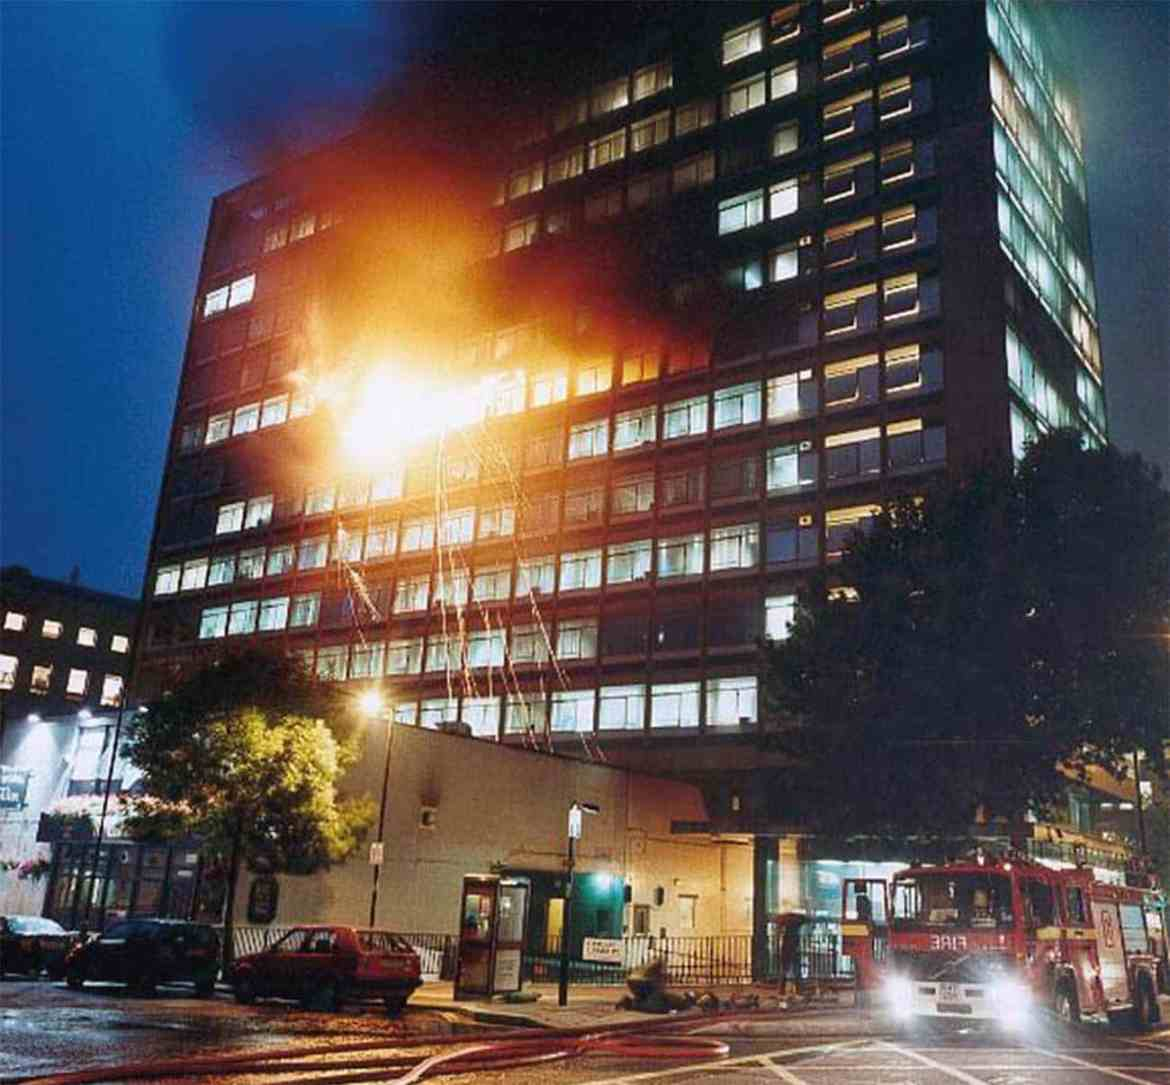 A 10 pump nightime fire in an office tower with firefighters working to contain the outbreak to three floors. Telstar House, Central London.